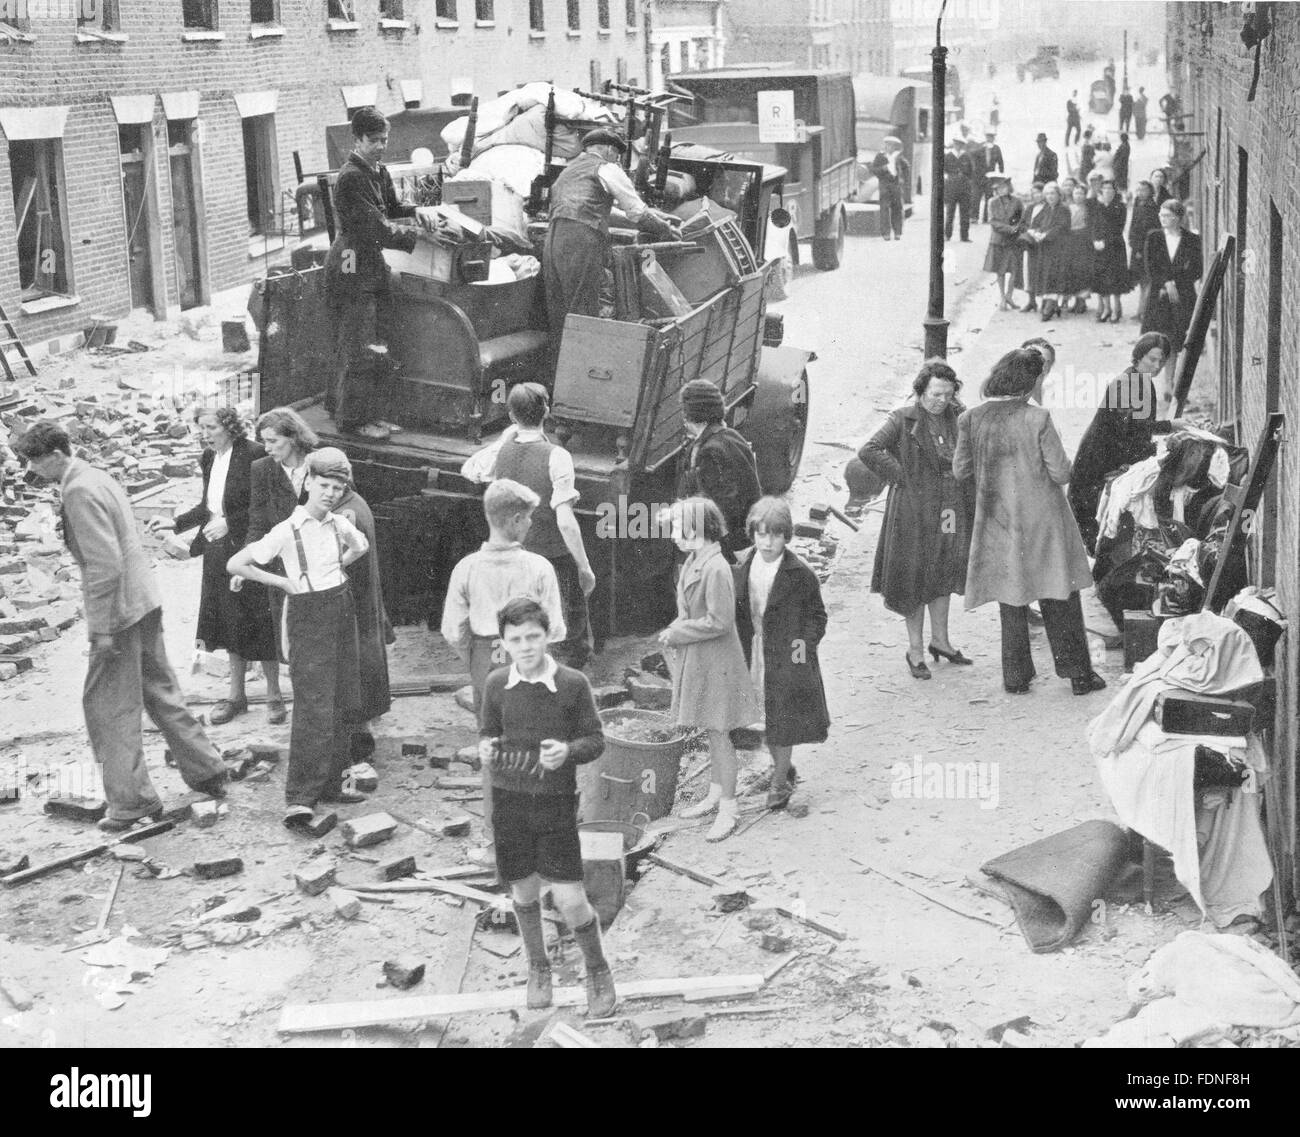 LONDON: World War 2 blitz bomb damage, vintage print 1943 - Stock Image